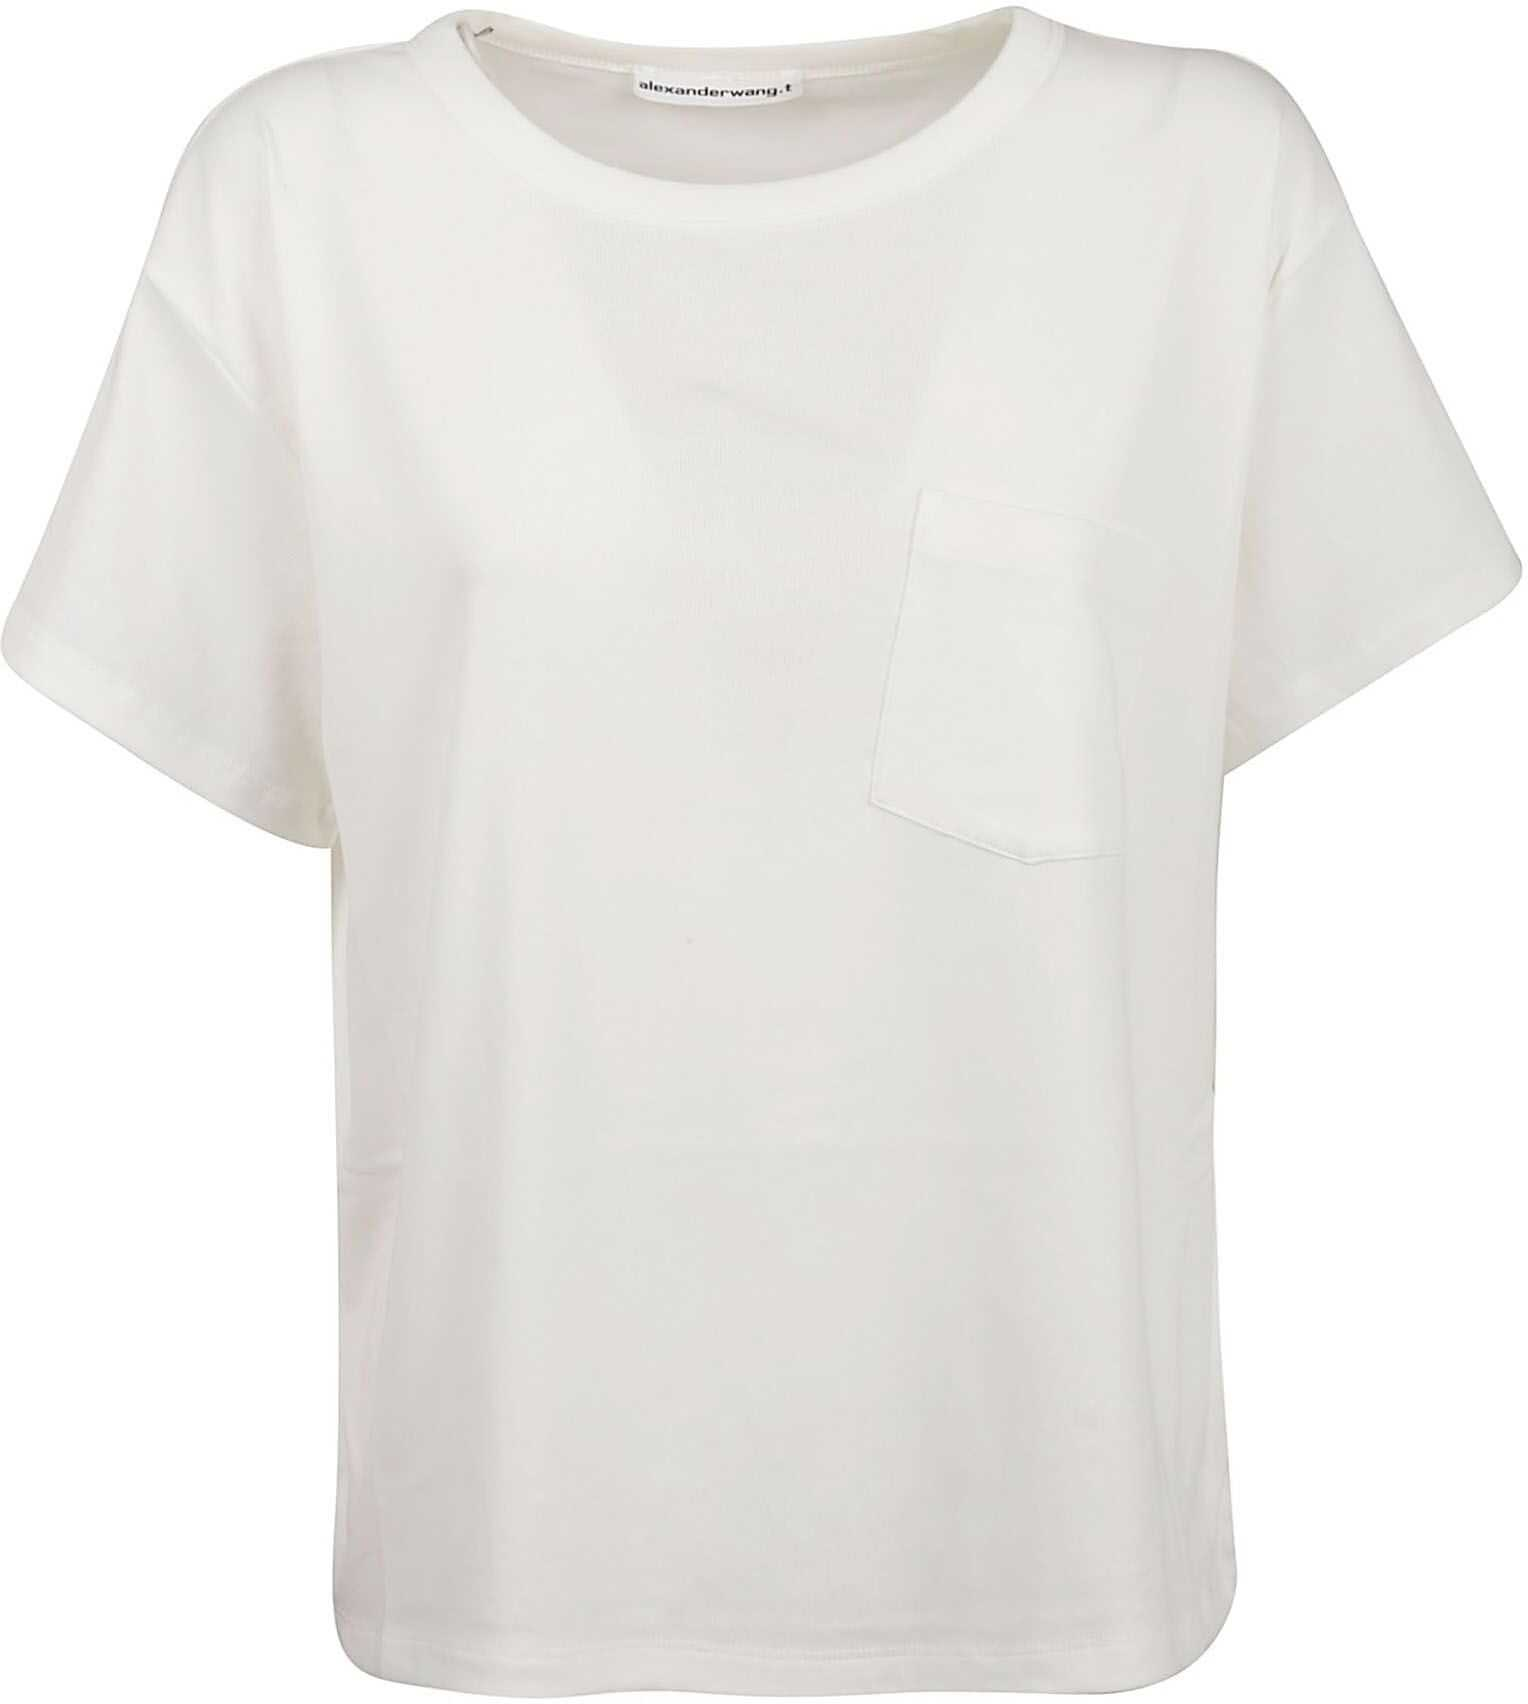 Alexander Wang Cotton T-Shirt WHITE